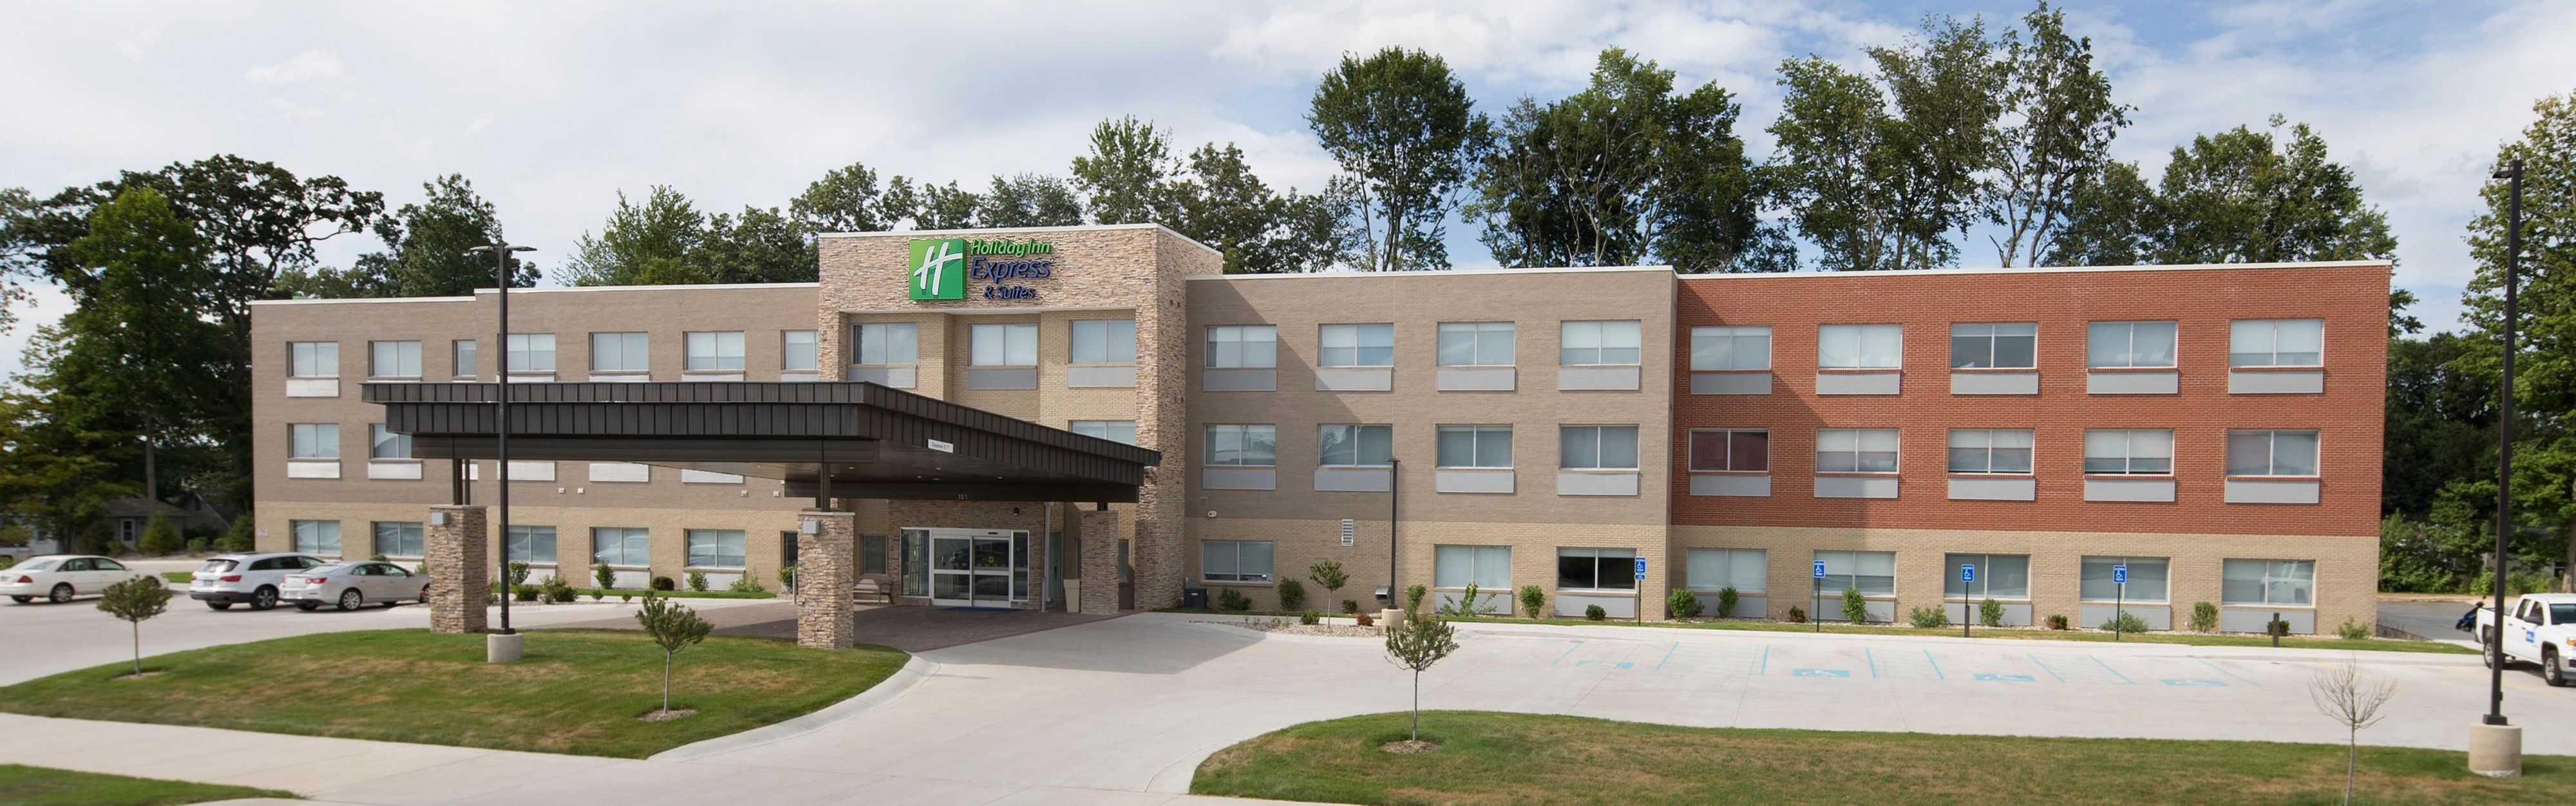 Holiday inn express suites la porte coupons laporte in near me 8coupons for Jobs near la porte in